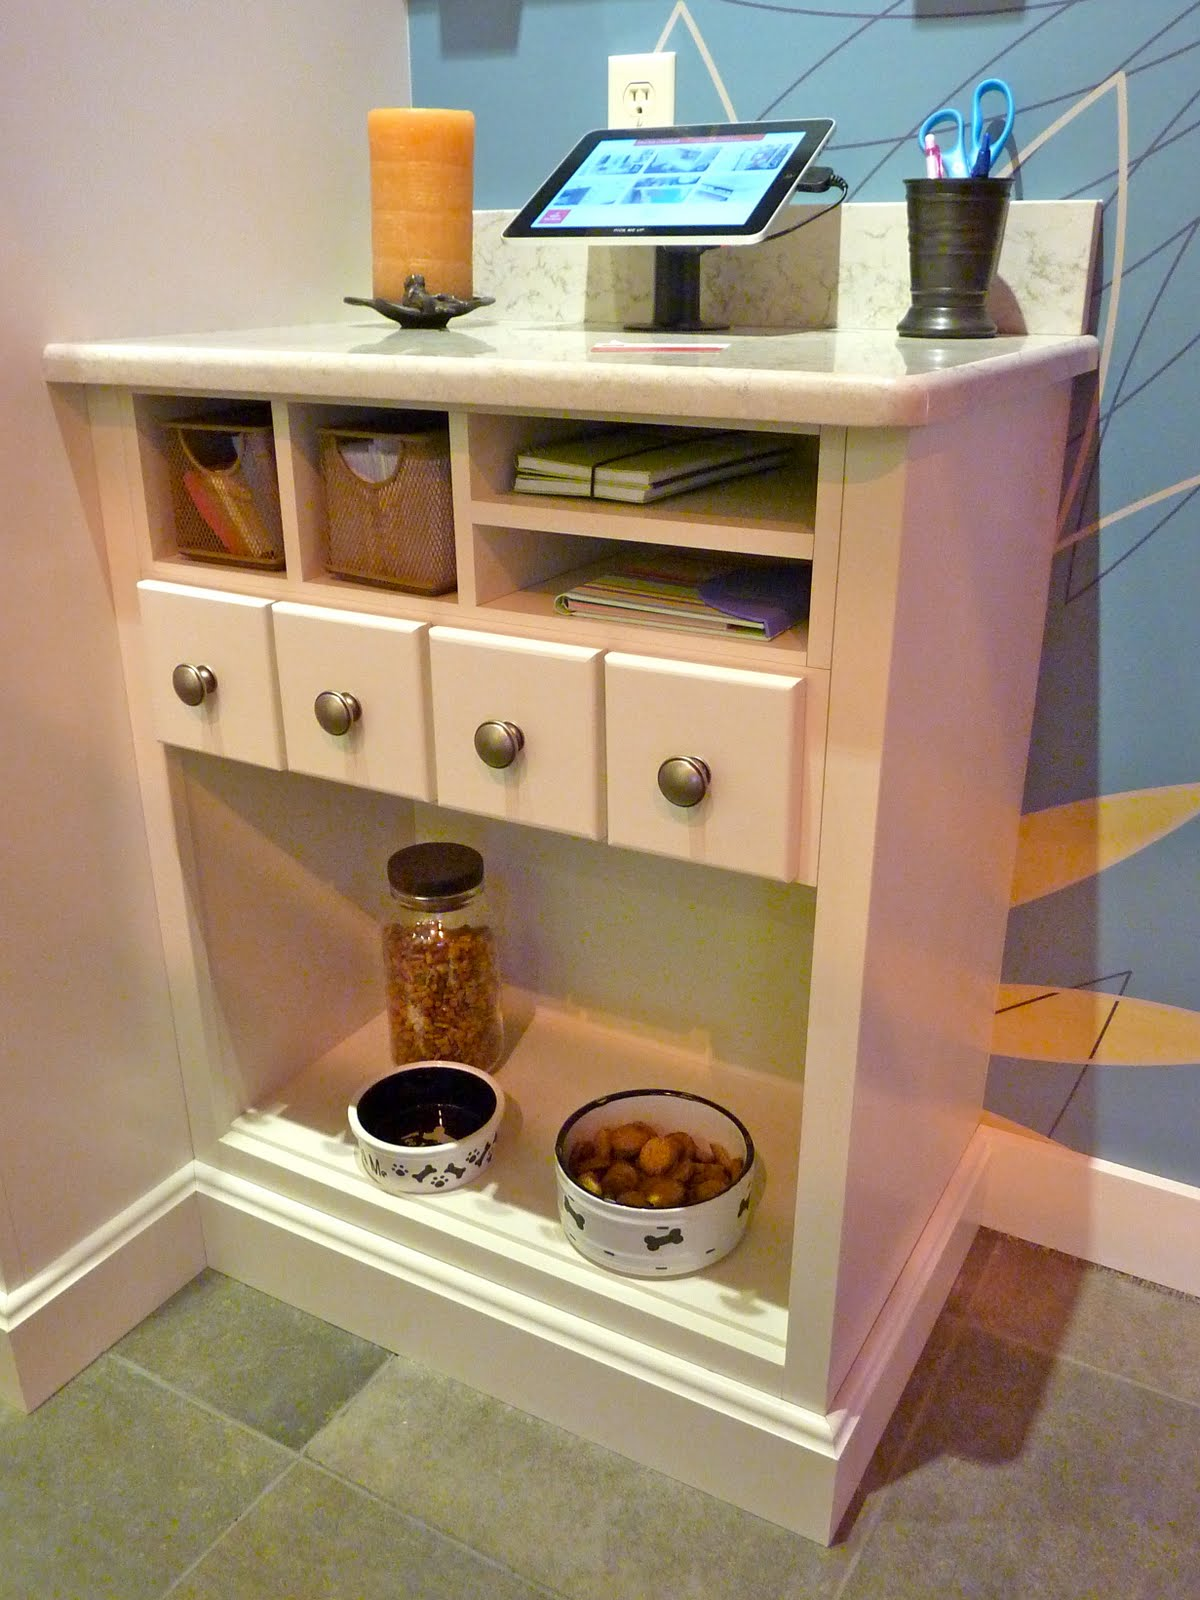 Exceptionnel You Donu0027t Need A Custom Cabinet Line To Achieve Your Pet Center Either. A  Skilled Designer Can Weave Together Elements From A Stock Or Semi Custom  Cabinet ...